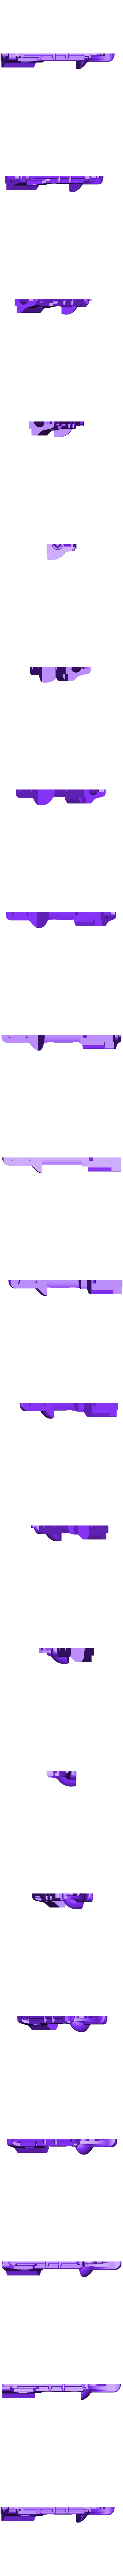 Barrel Rear Left.stl Download free STL file Full size Hawkmoon • 3D printer design, Easton3D